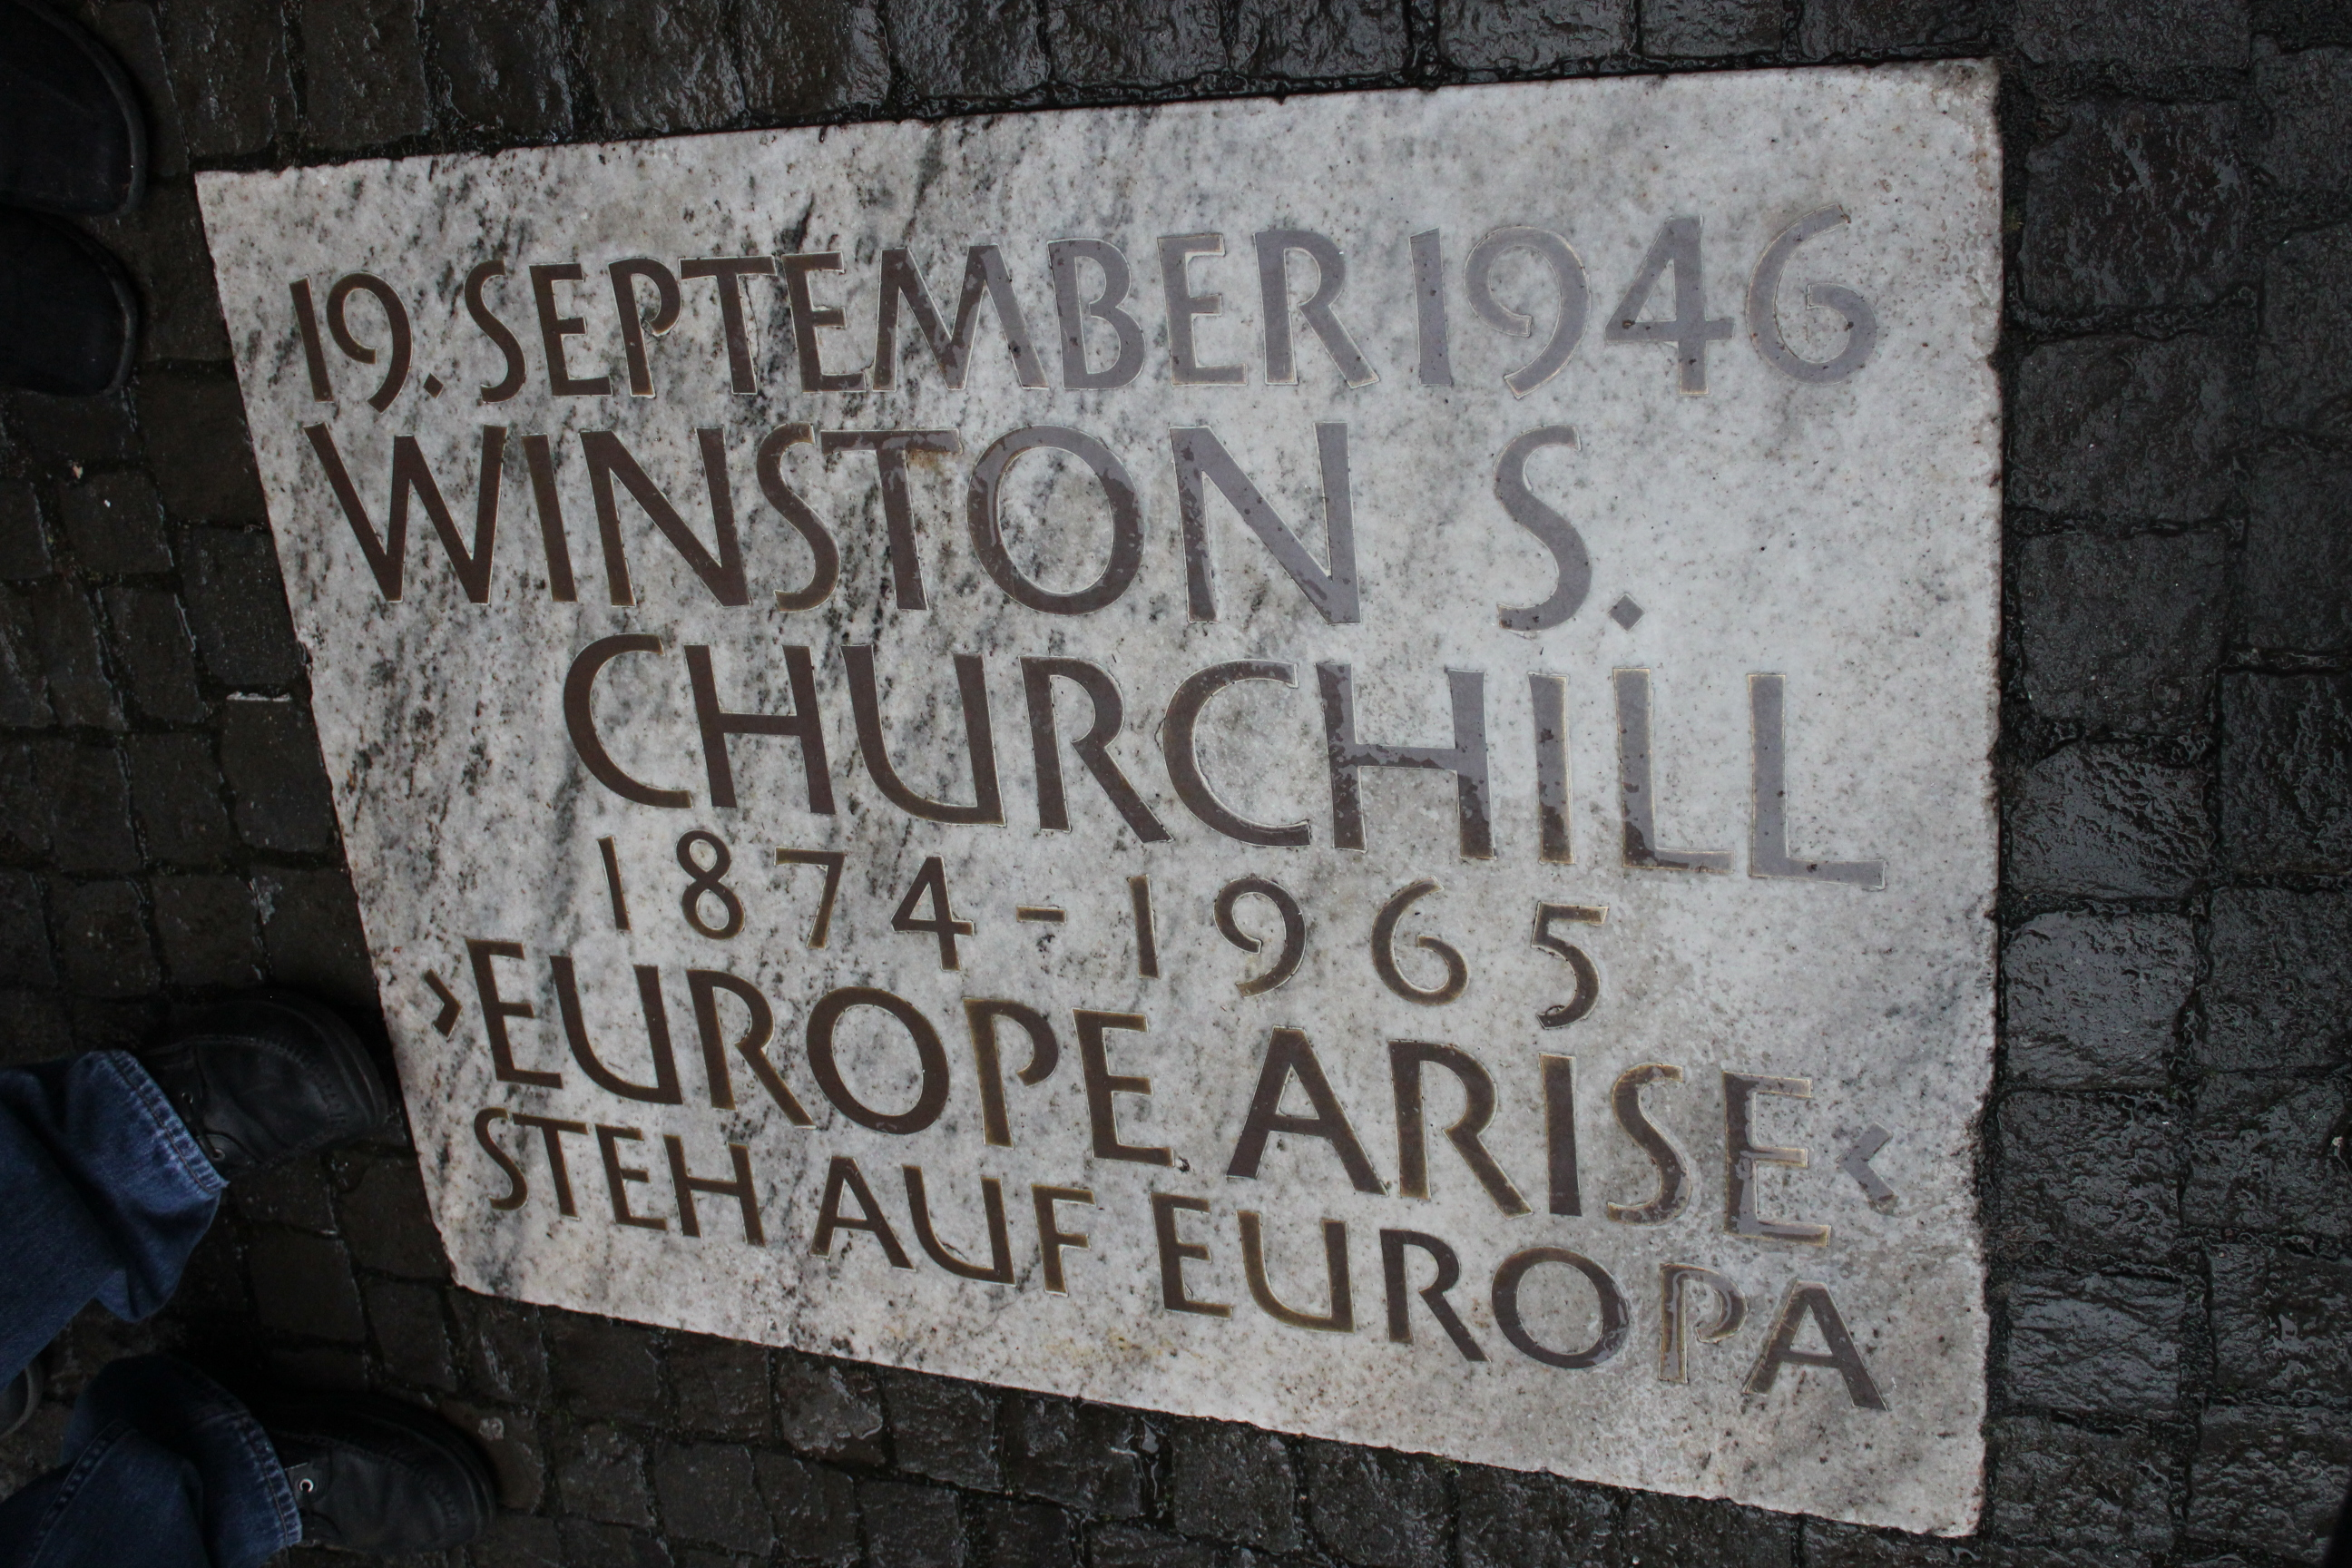 Winston Churchill; Zurich, Switzerland; 2011